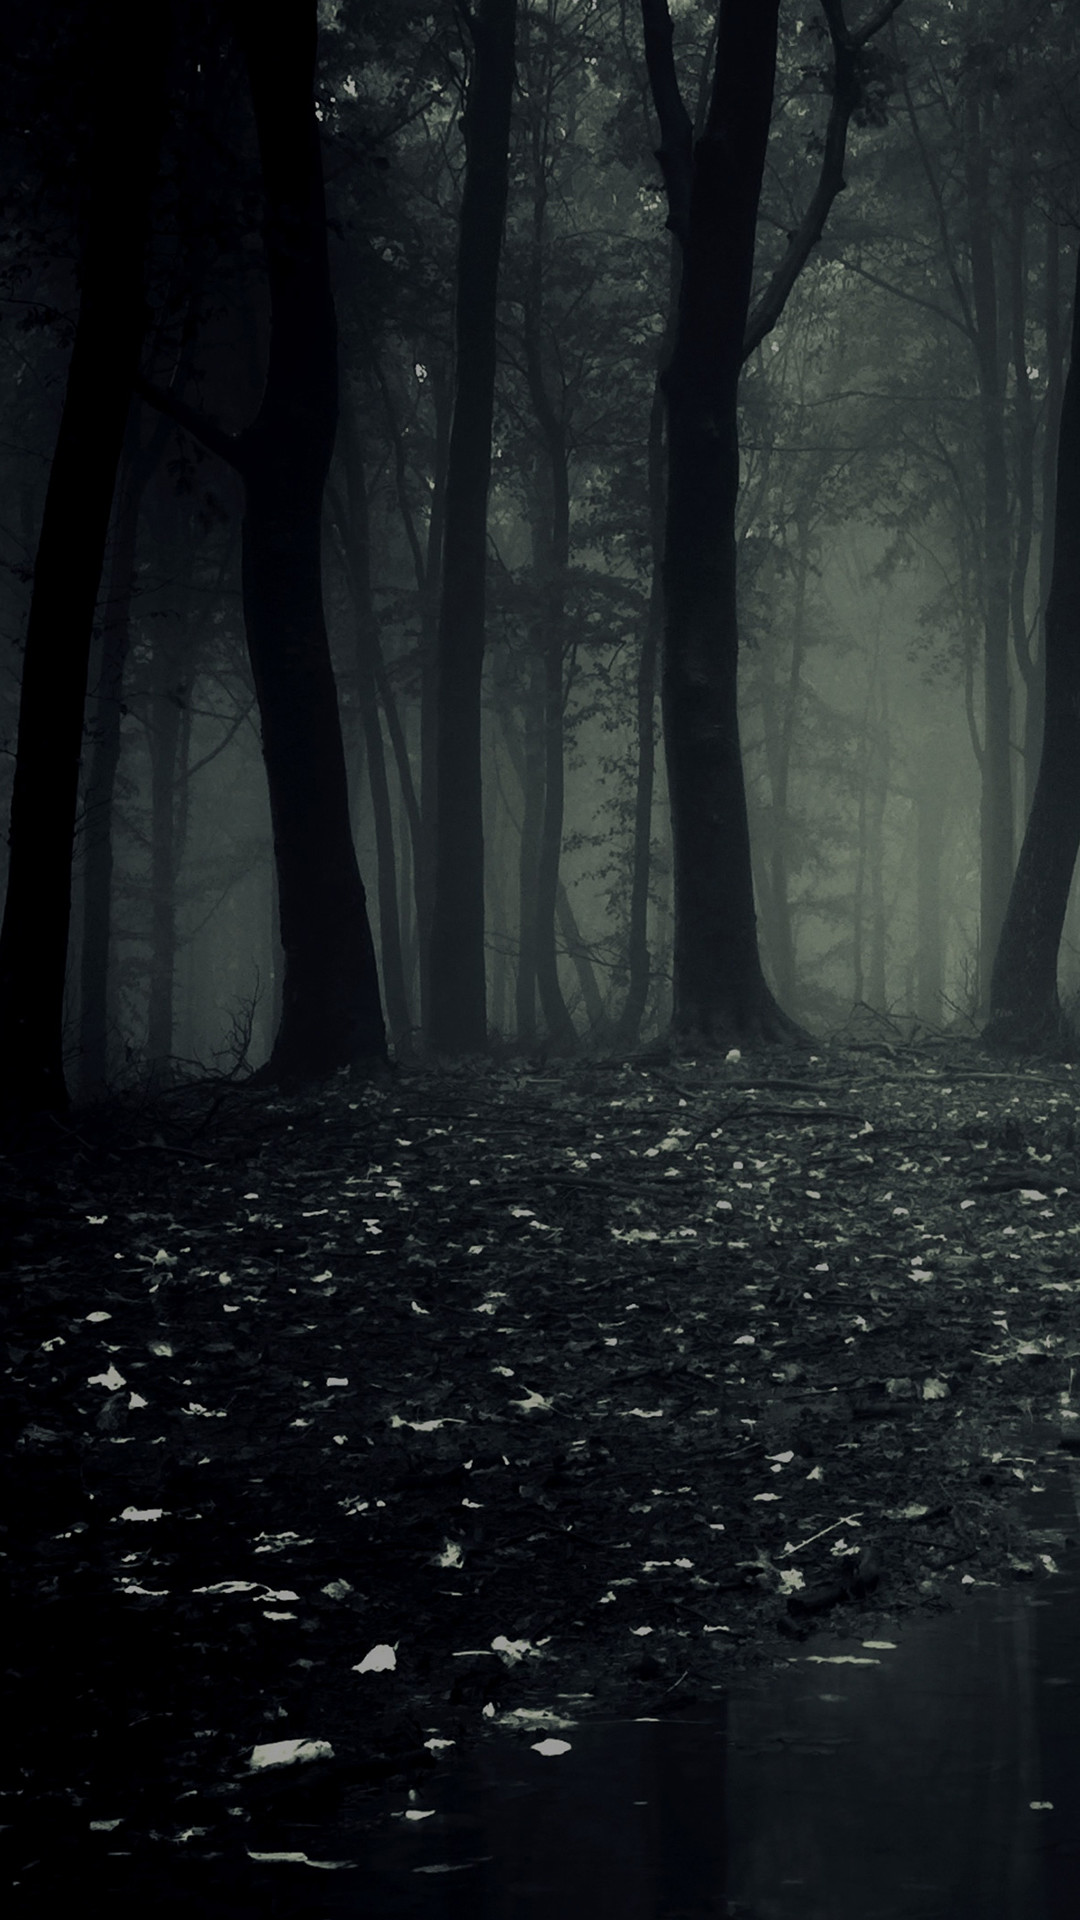 2736x2141 Collection Of Dark Forest Widescreen Wallpapers Free Download